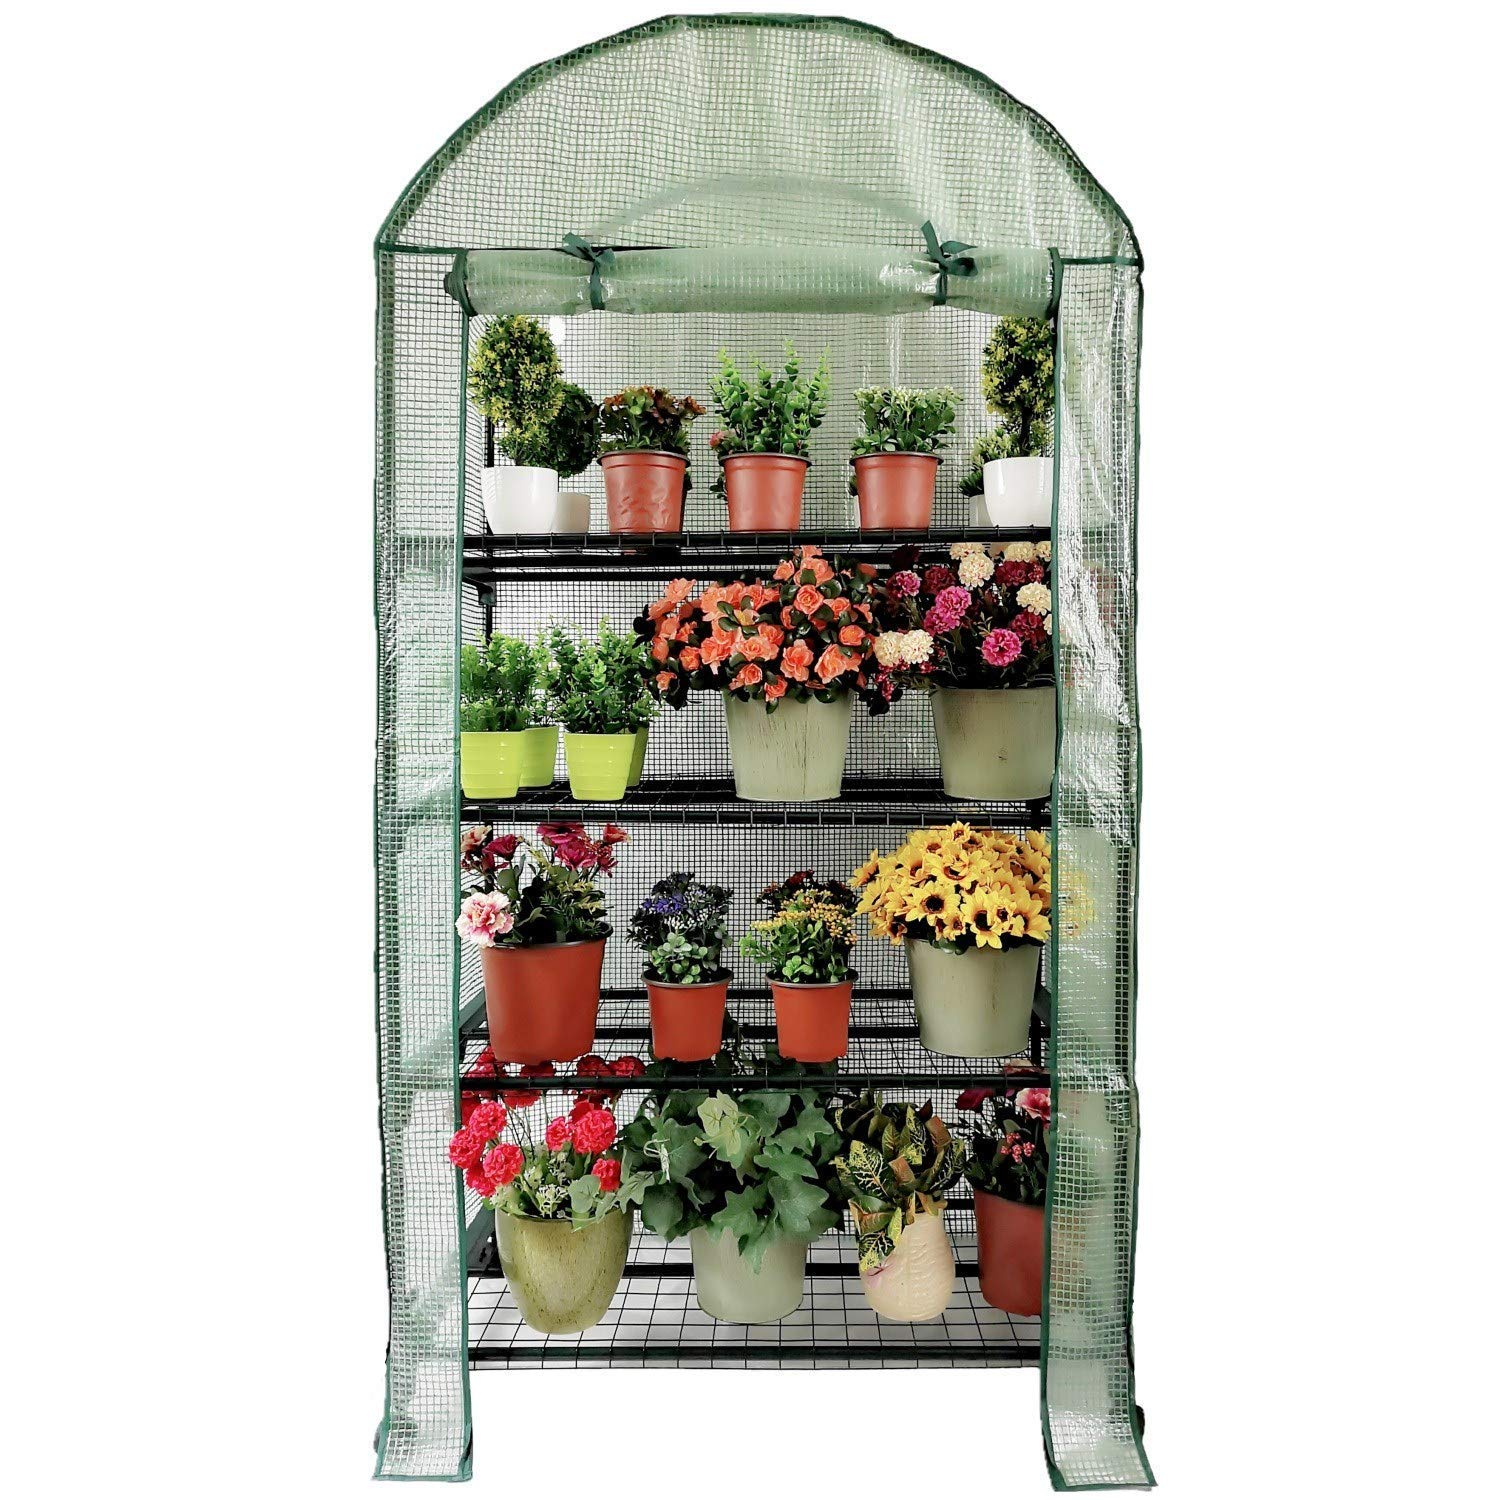 OUTOUR Wider 35×19.6×66.5in 4 Tier Wider Portable Plant Mini Greenhouse Green House with Casters, for Growing Seeds, Seedlings, Tending Potted Plants, Garden Gardening Indoor Outdoor